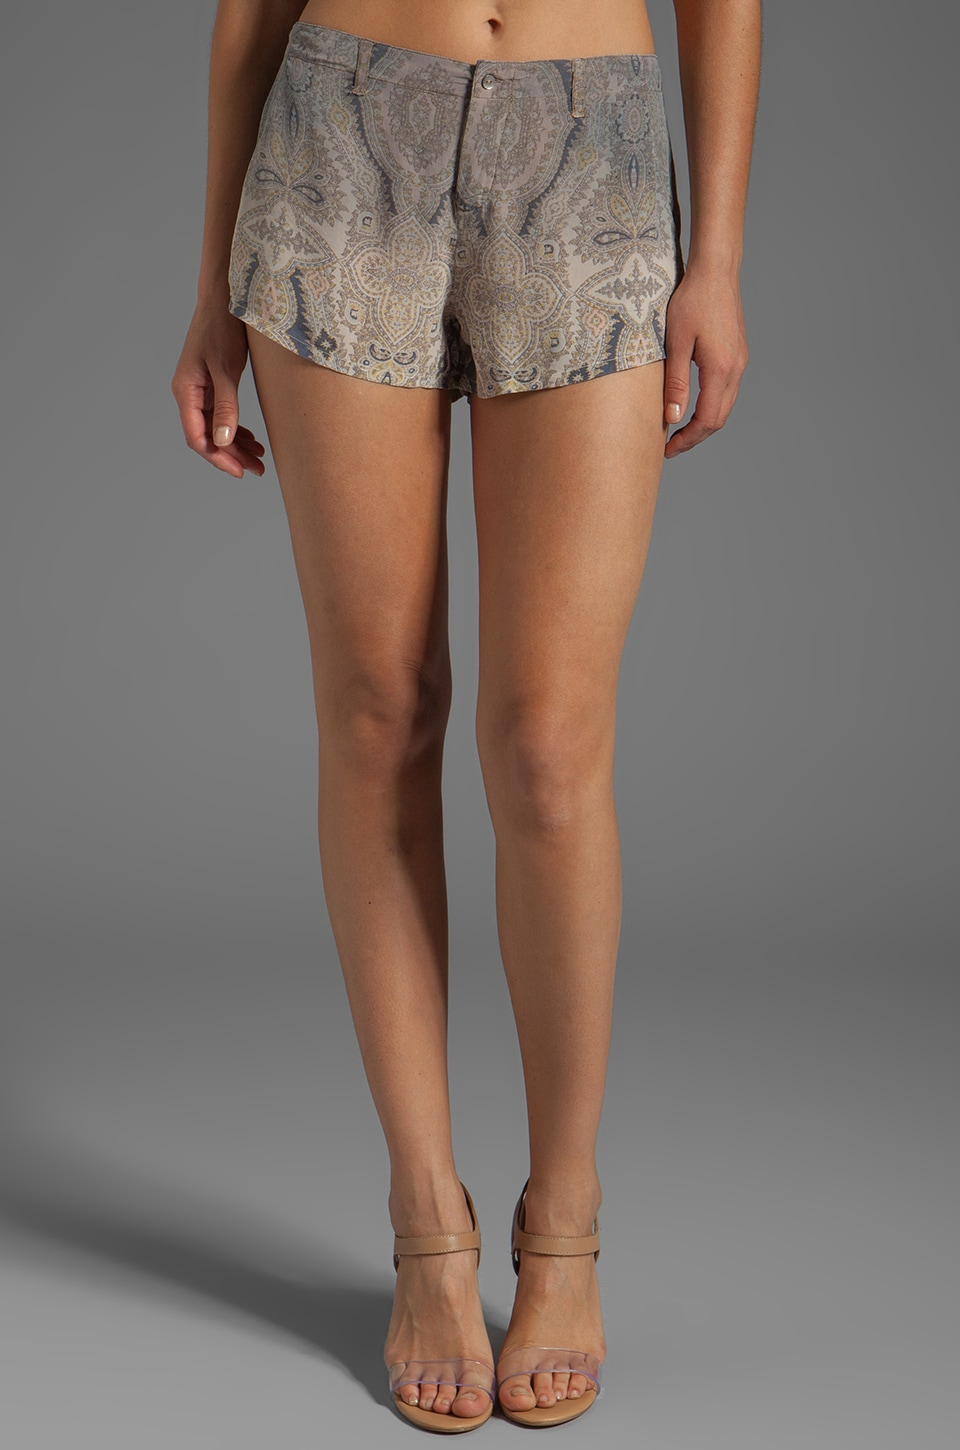 Gypsy 05 Nusa Dua Silk Flat Front Paisley Short in Smoke